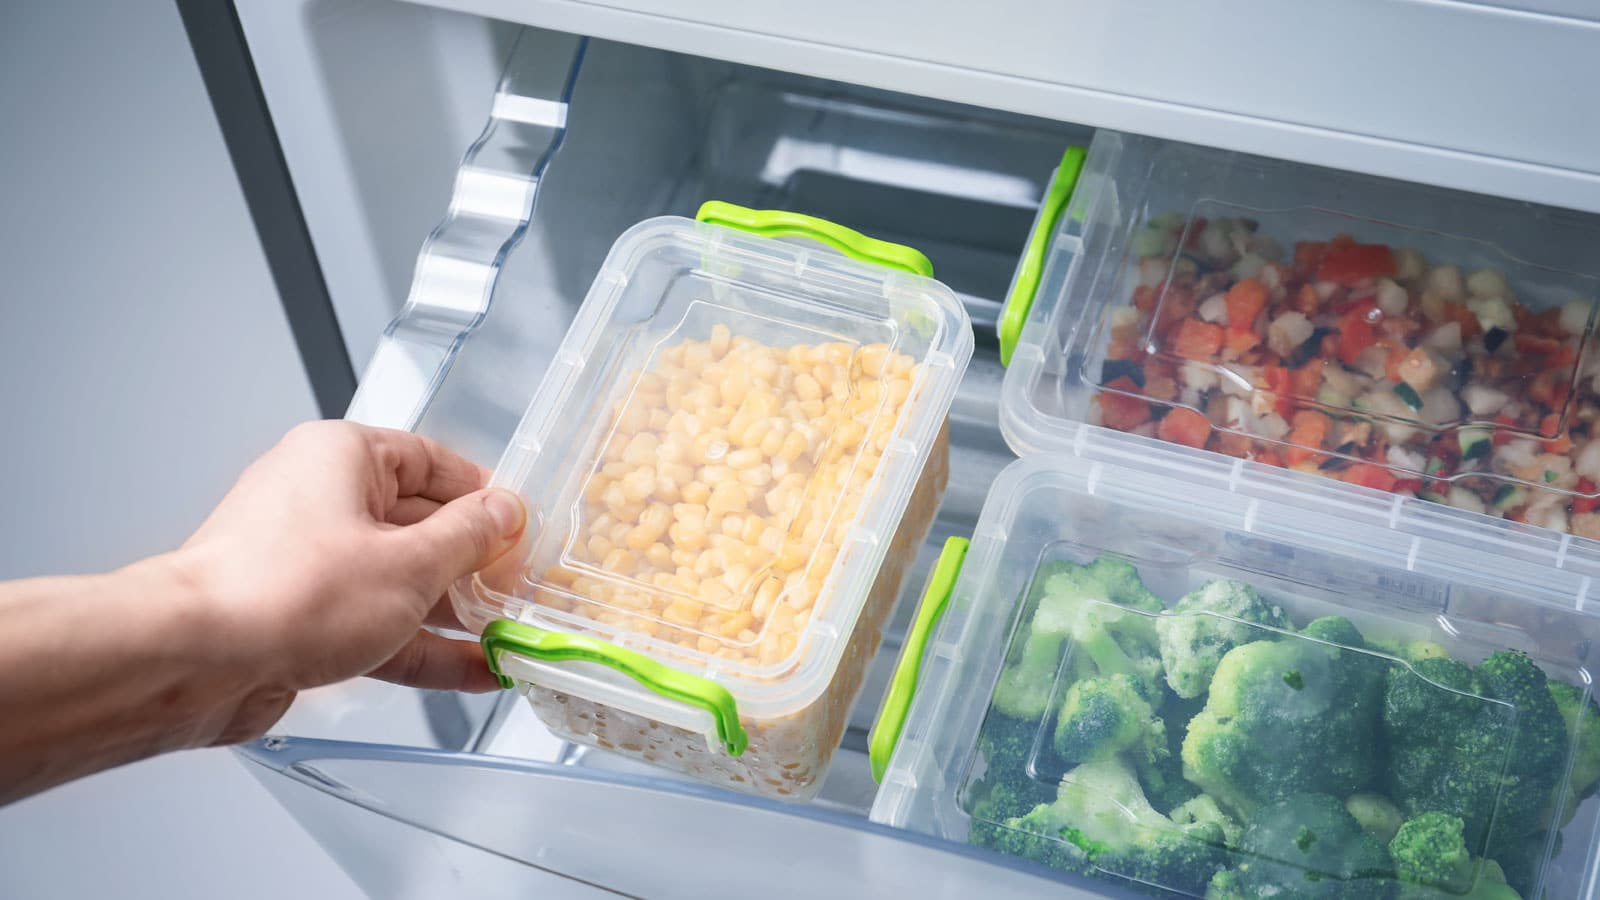 How to have a plastic-free freezer